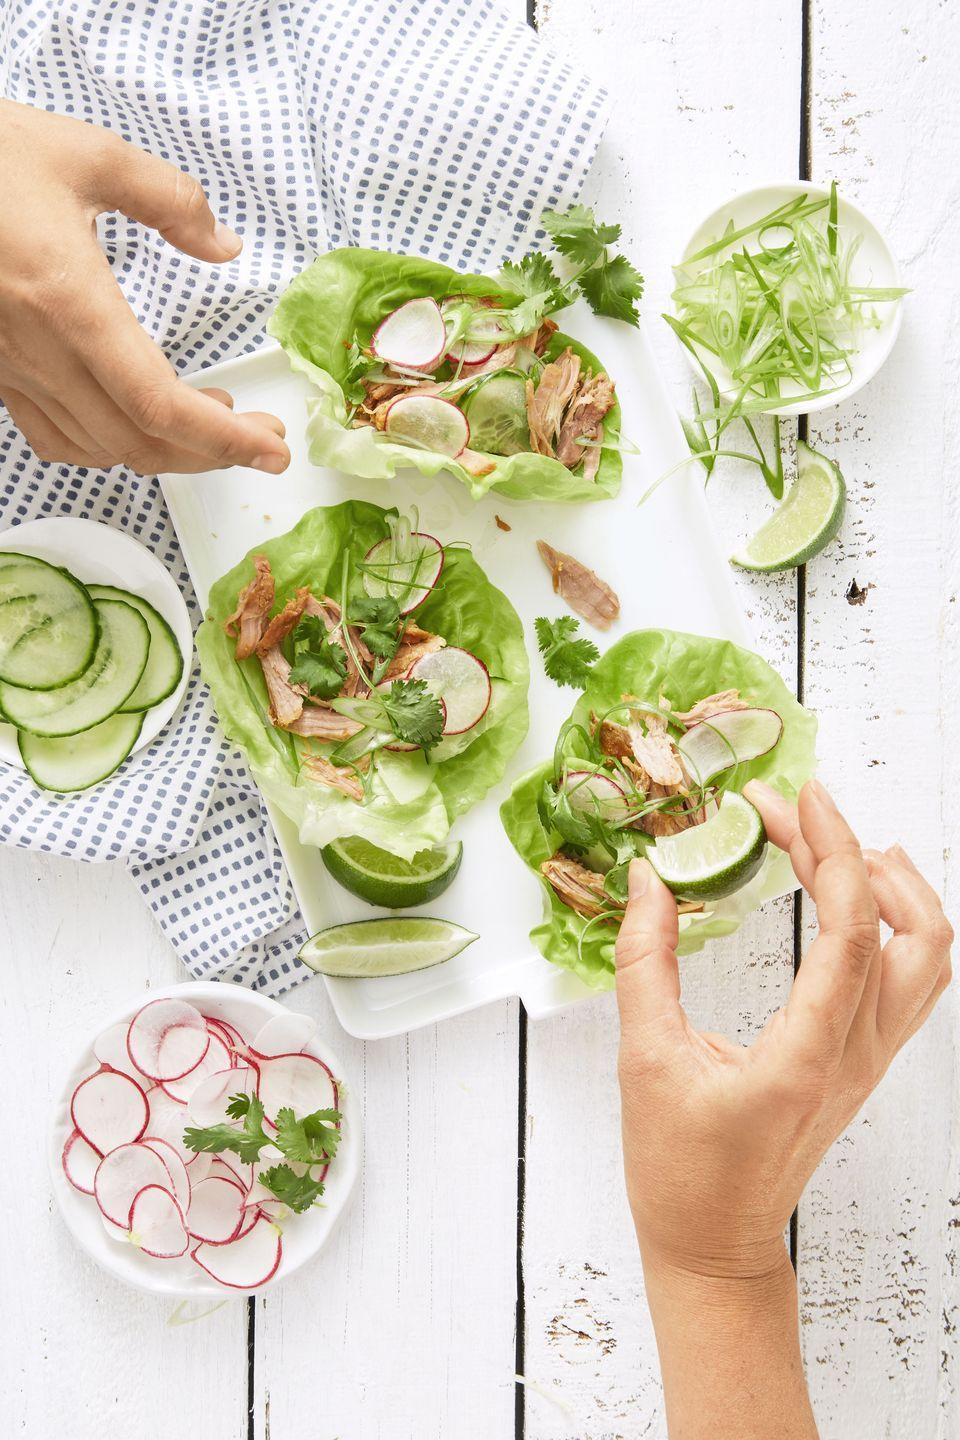 "<p>Let the guests serve themselves tonight. Bring the slow cooker to the table, so they can fill their own pieces of lettuce with savory miso pork. Who needs fancy platters or serving utensils? </p><p><em><a href=""https://www.goodhousekeeping.com/food-recipes/easy/a34182/korean-pork-lettuce-wraps/"" rel=""nofollow noopener"" target=""_blank"" data-ylk=""slk:Get the recipe for Korean Pork Lettuce Wraps »"" class=""link rapid-noclick-resp"">Get the recipe for Korean Pork Lettuce Wraps »</a></em> </p><p><strong>RELATED: </strong><a href=""https://www.goodhousekeeping.com/food-recipes/healthy/g1364/myplate-inspired-slow-cooker-dinners"" rel=""nofollow noopener"" target=""_blank"" data-ylk=""slk:25 Healthy Slow Cooker Recipes That Basically Make Themselves"" class=""link rapid-noclick-resp"">25 Healthy Slow Cooker Recipes That Basically Make Themselves</a></p>"